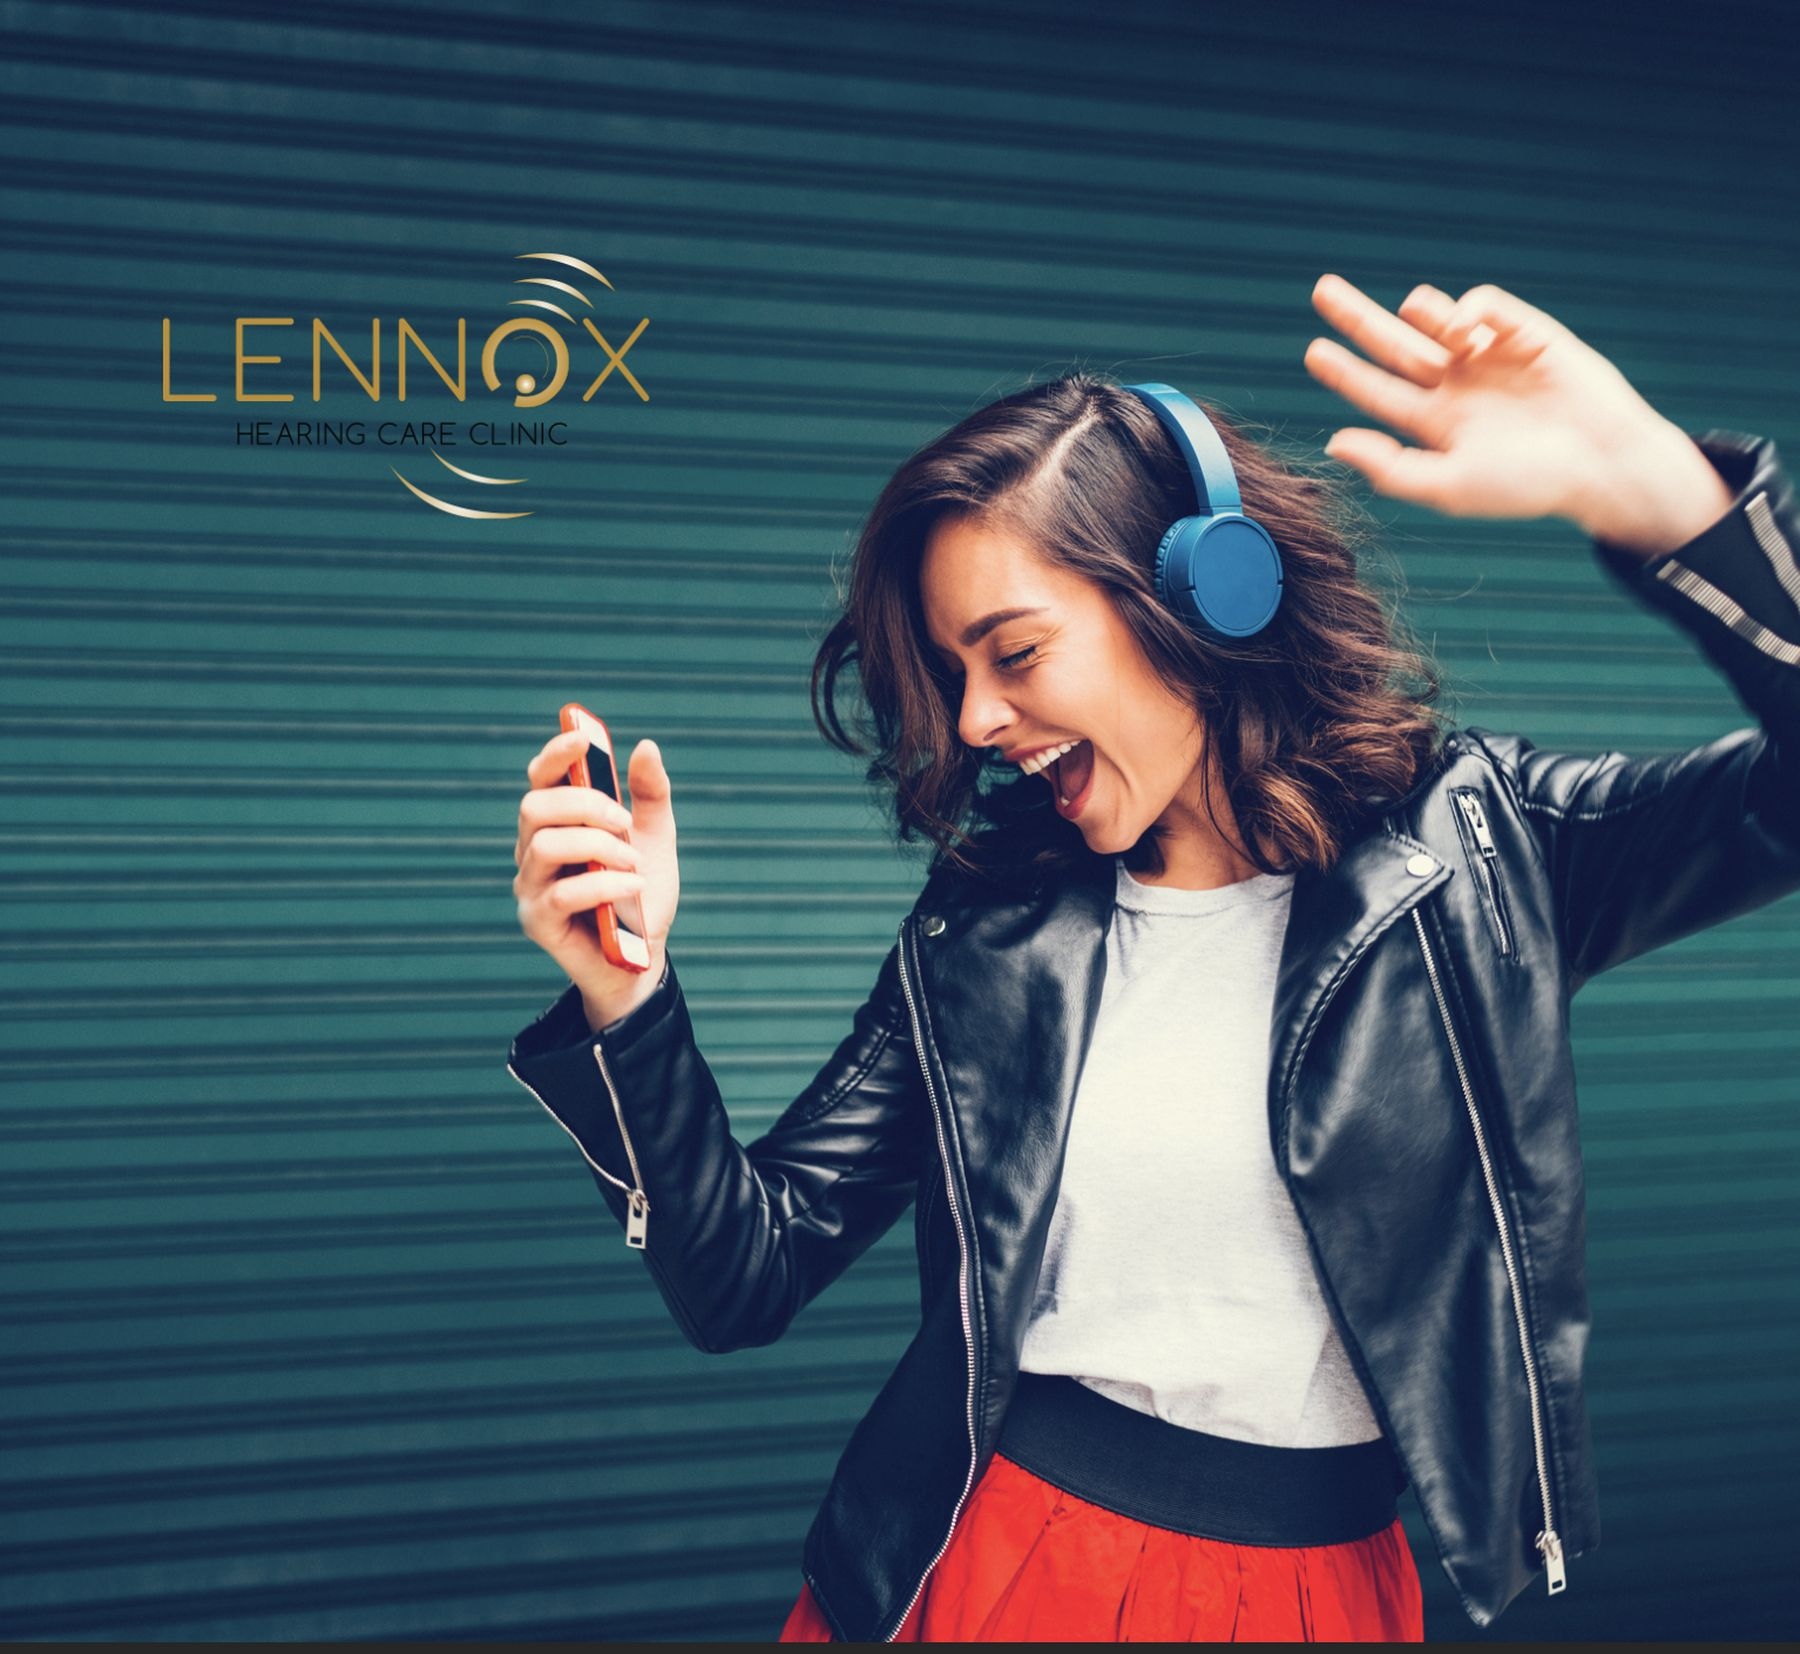 Lennox Hearing Cork - Award Winning Hearing Specialists in Cork, Limerick, Kerry and Waterford